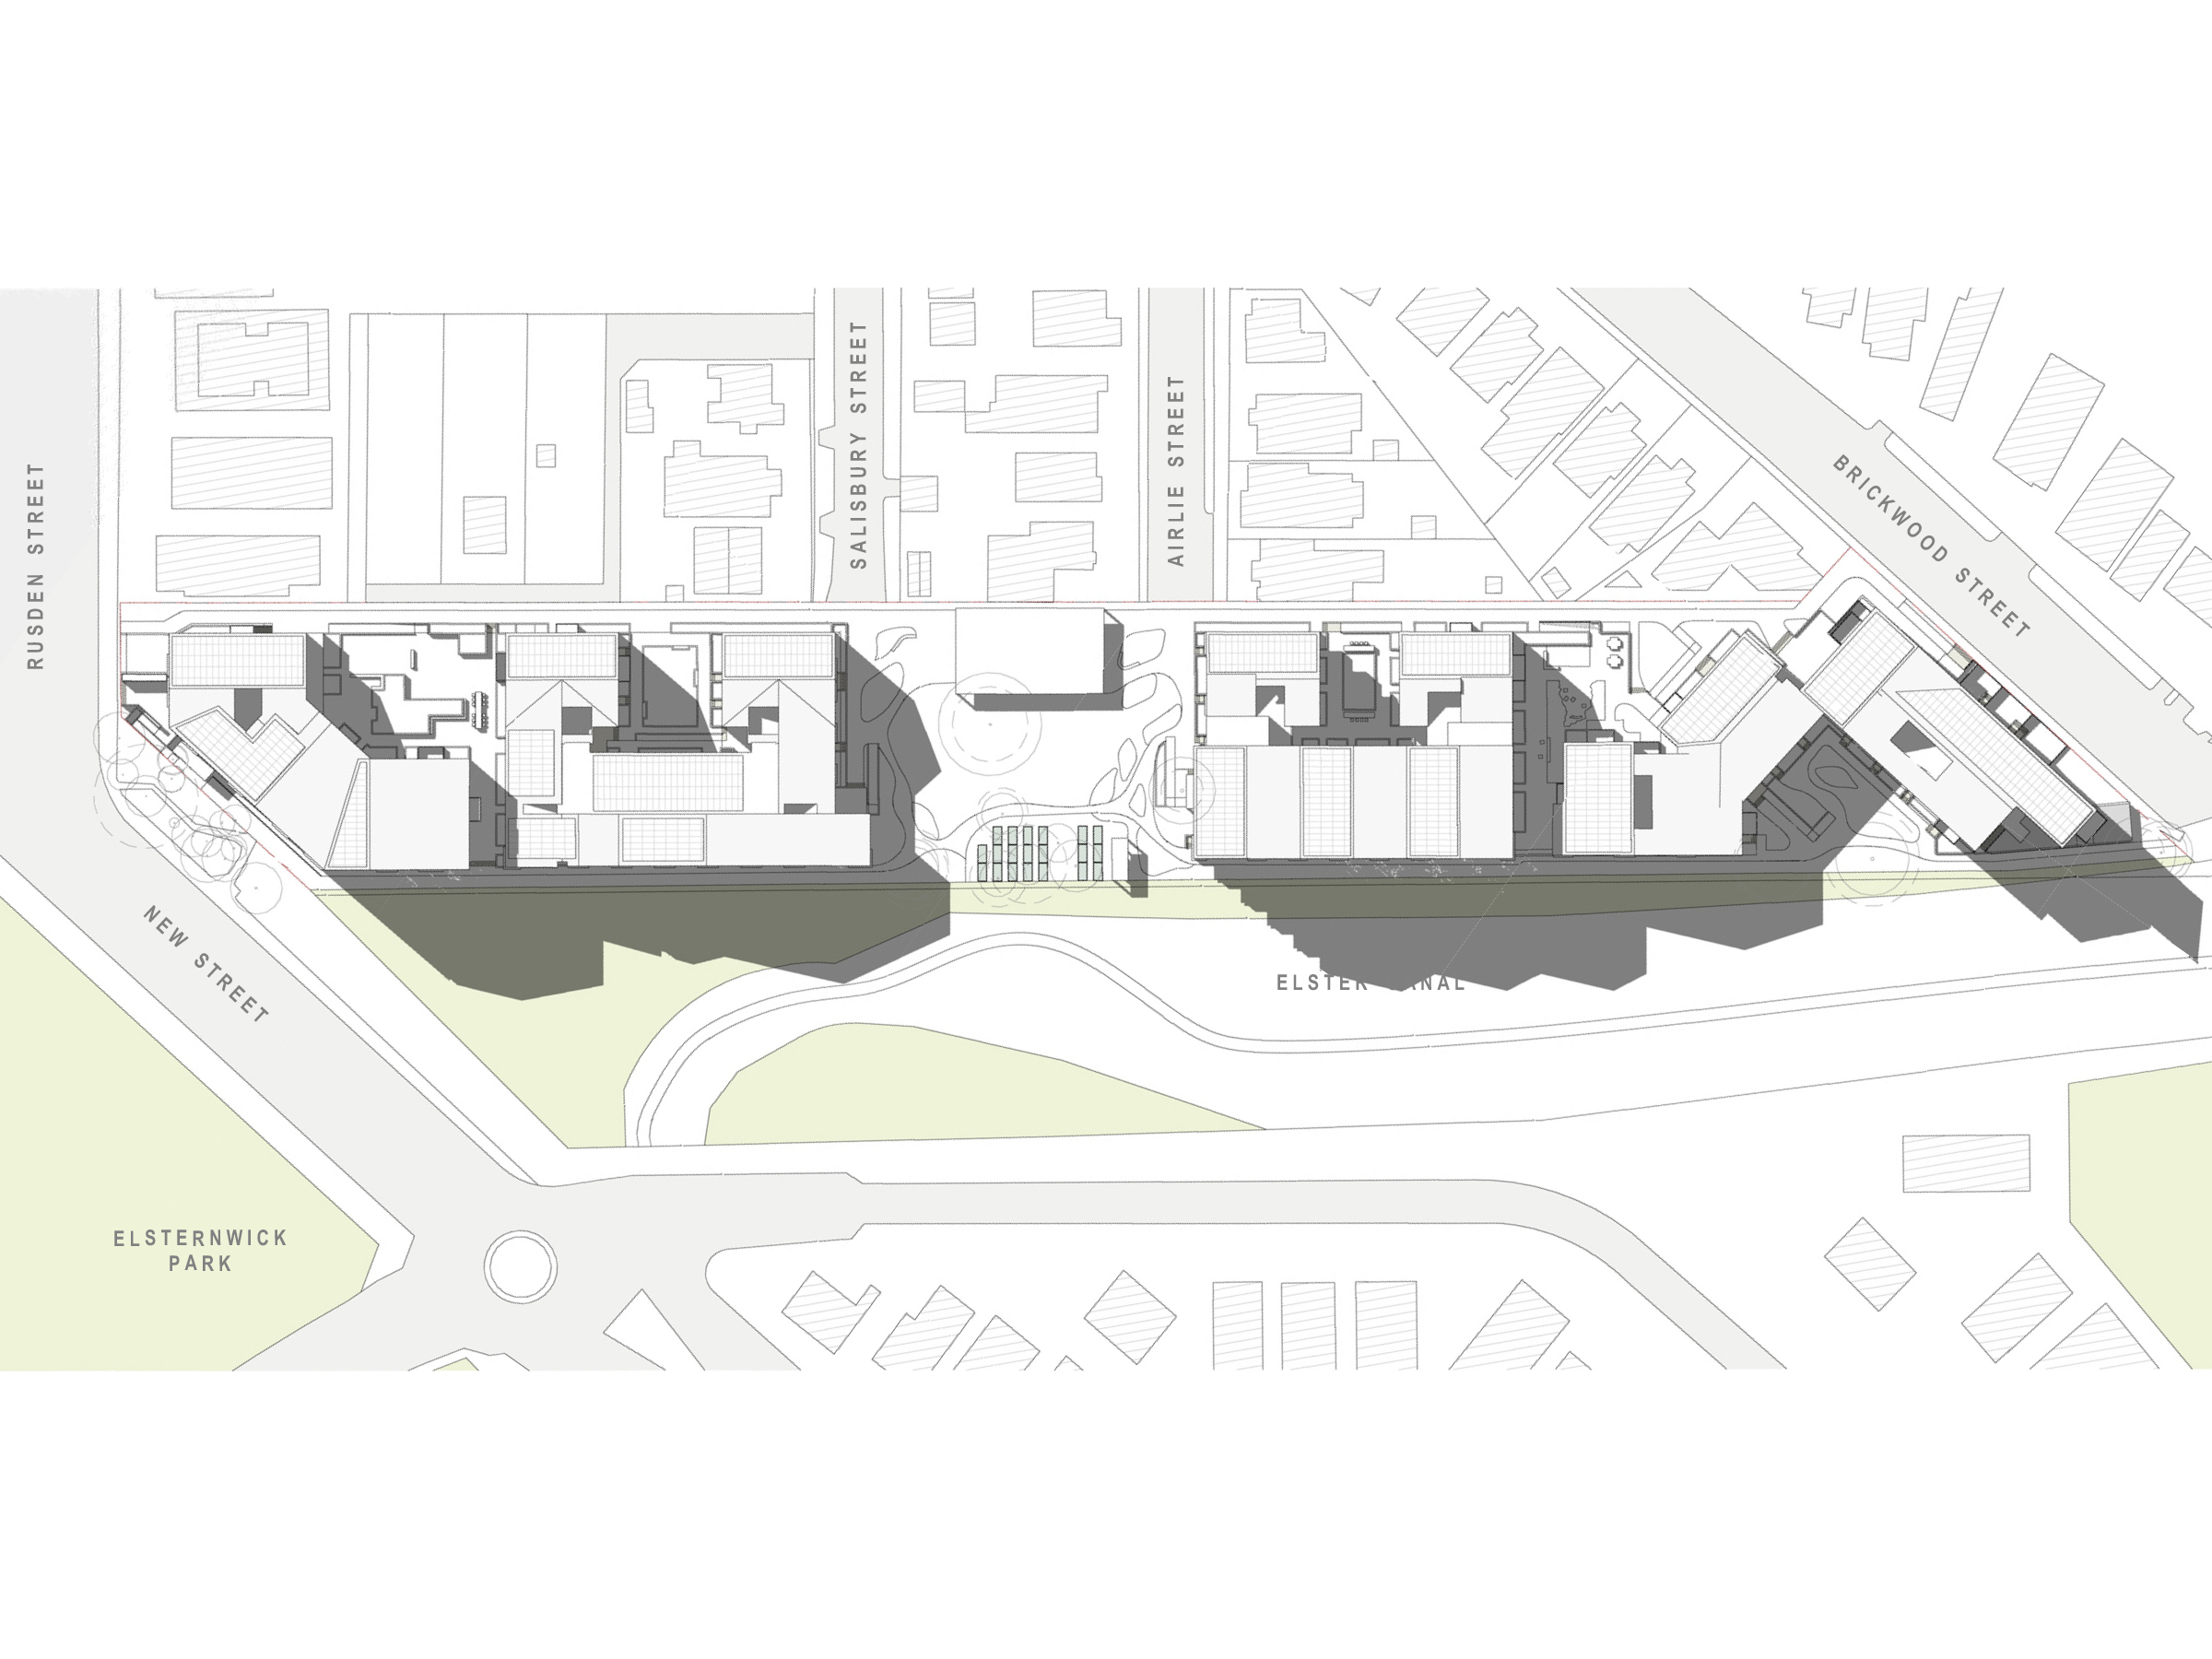 Diagram showing the shadows created by the new development in June at 12pm